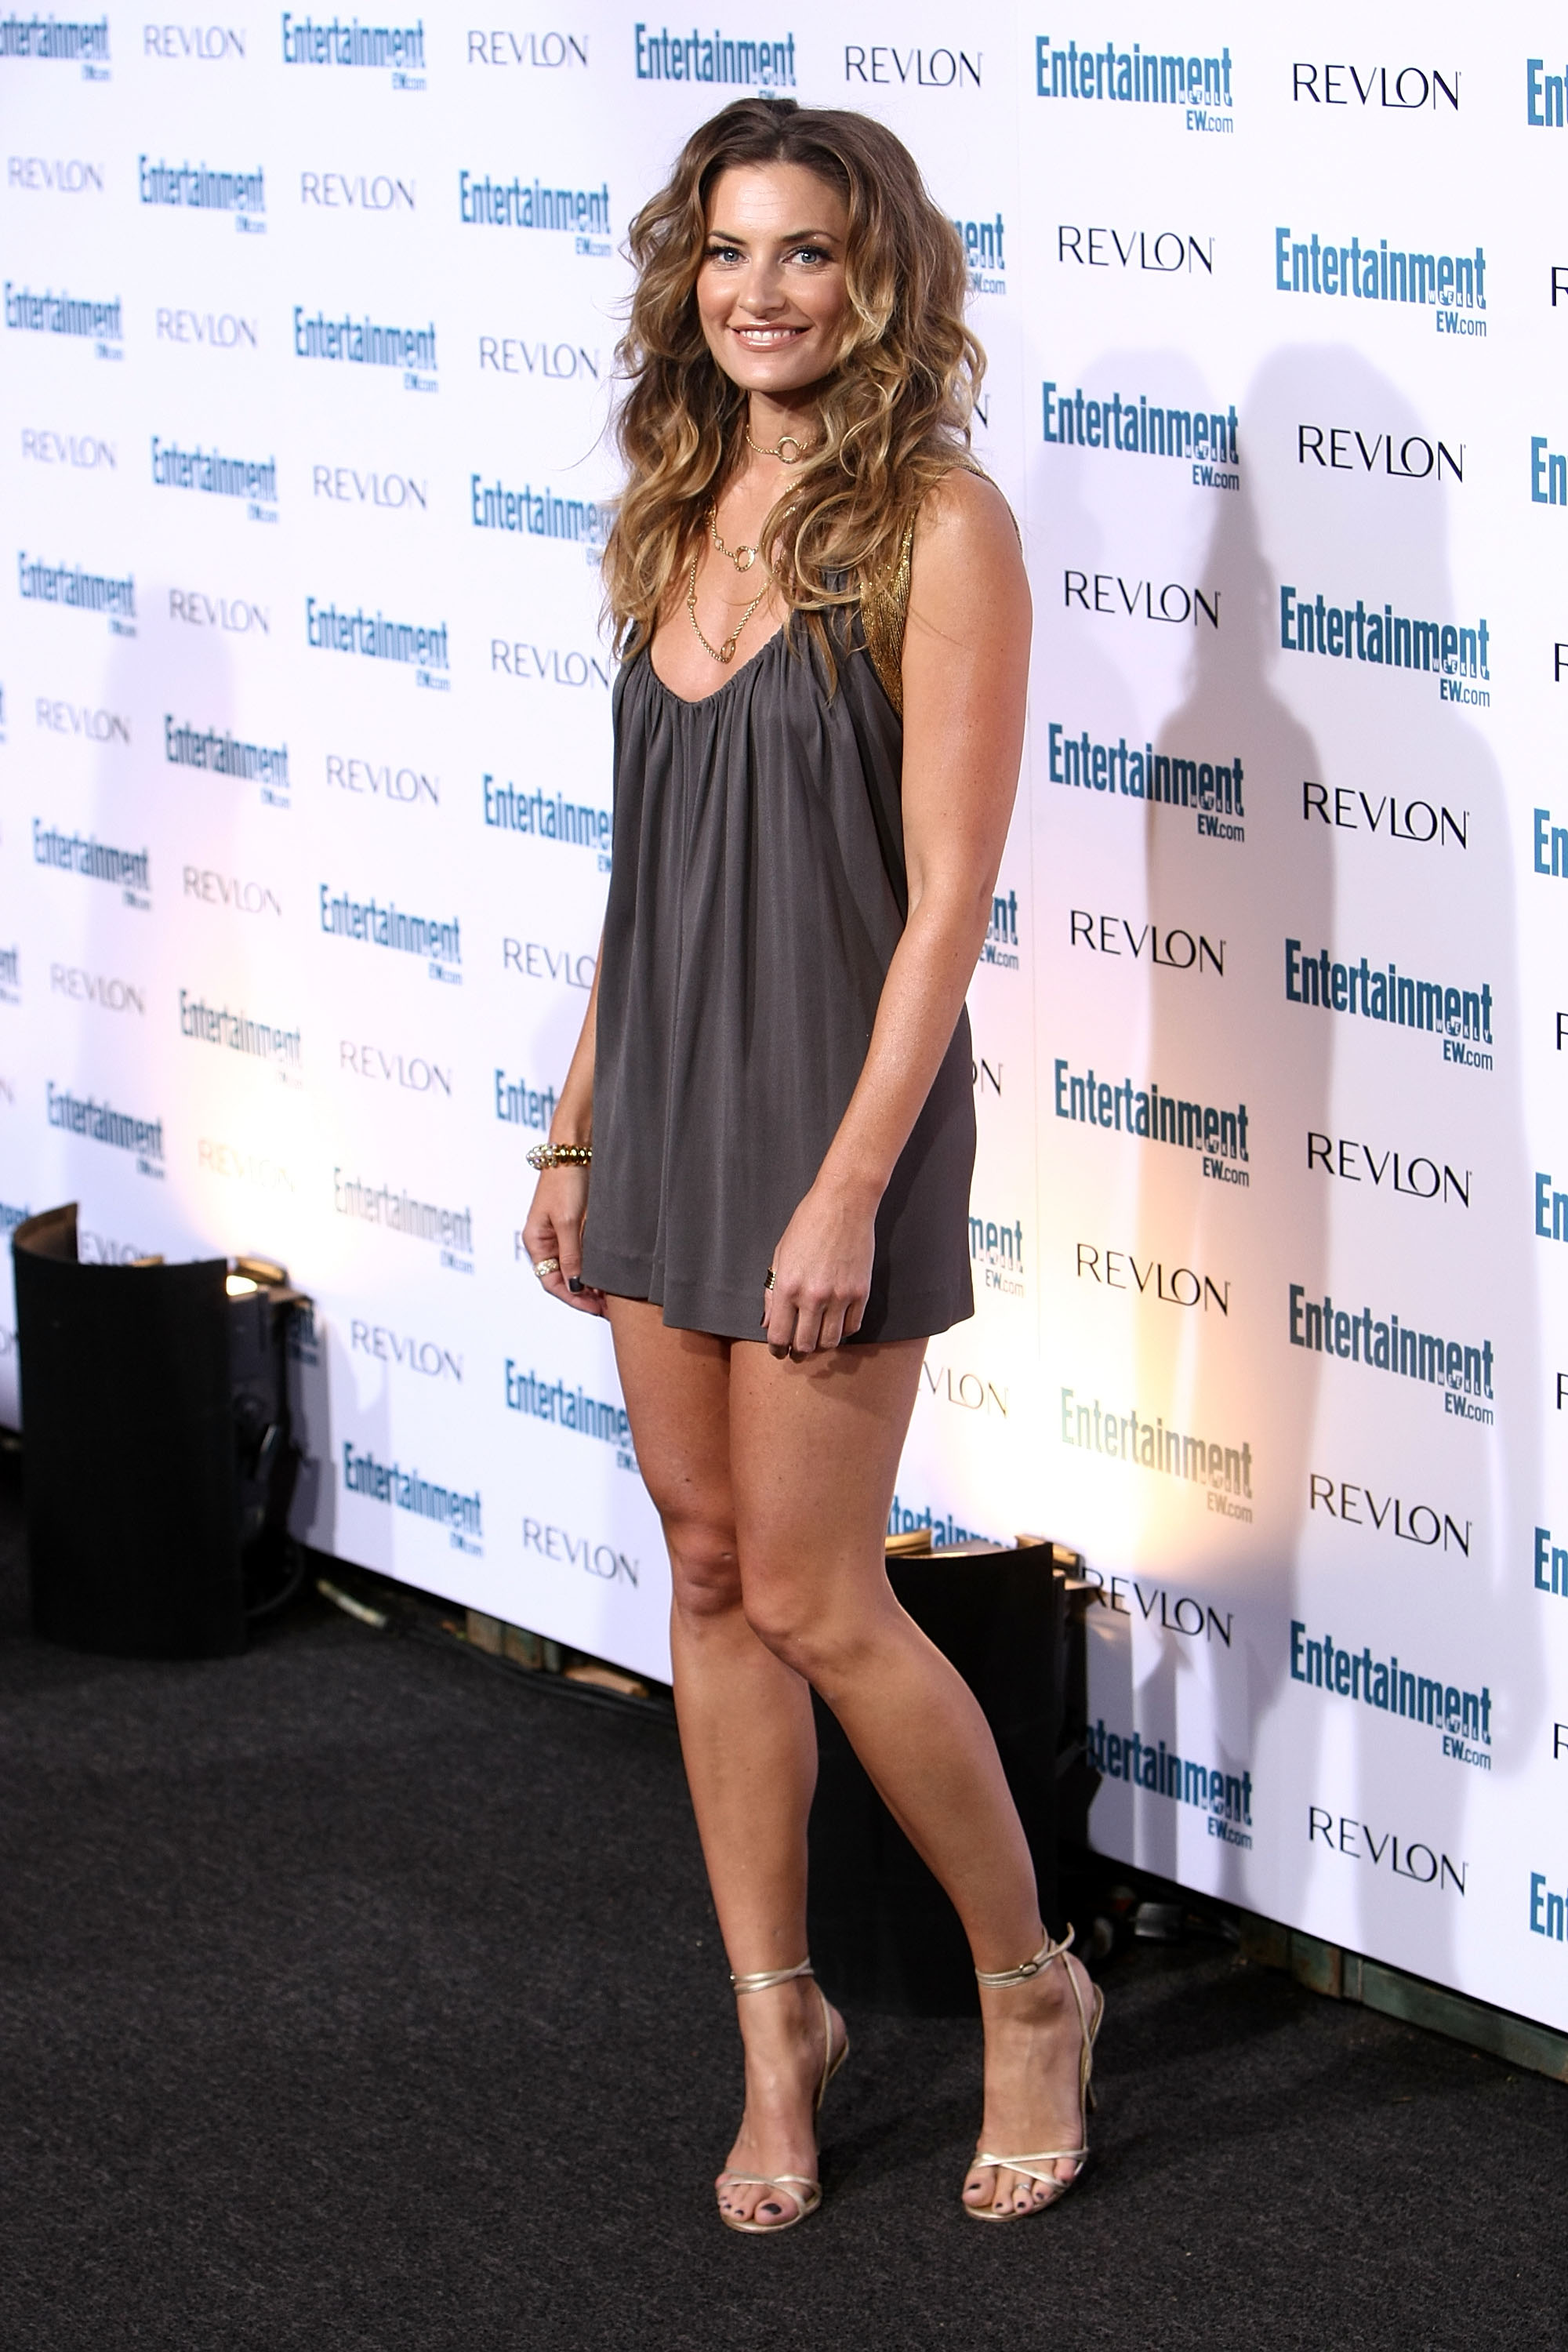 99177_Celebutopia-Madchen_Amick-Entertainment_Weekly7s_Sixth_Annual_Pre-Emmy_Celebration_party-05_122_757lo.jpg